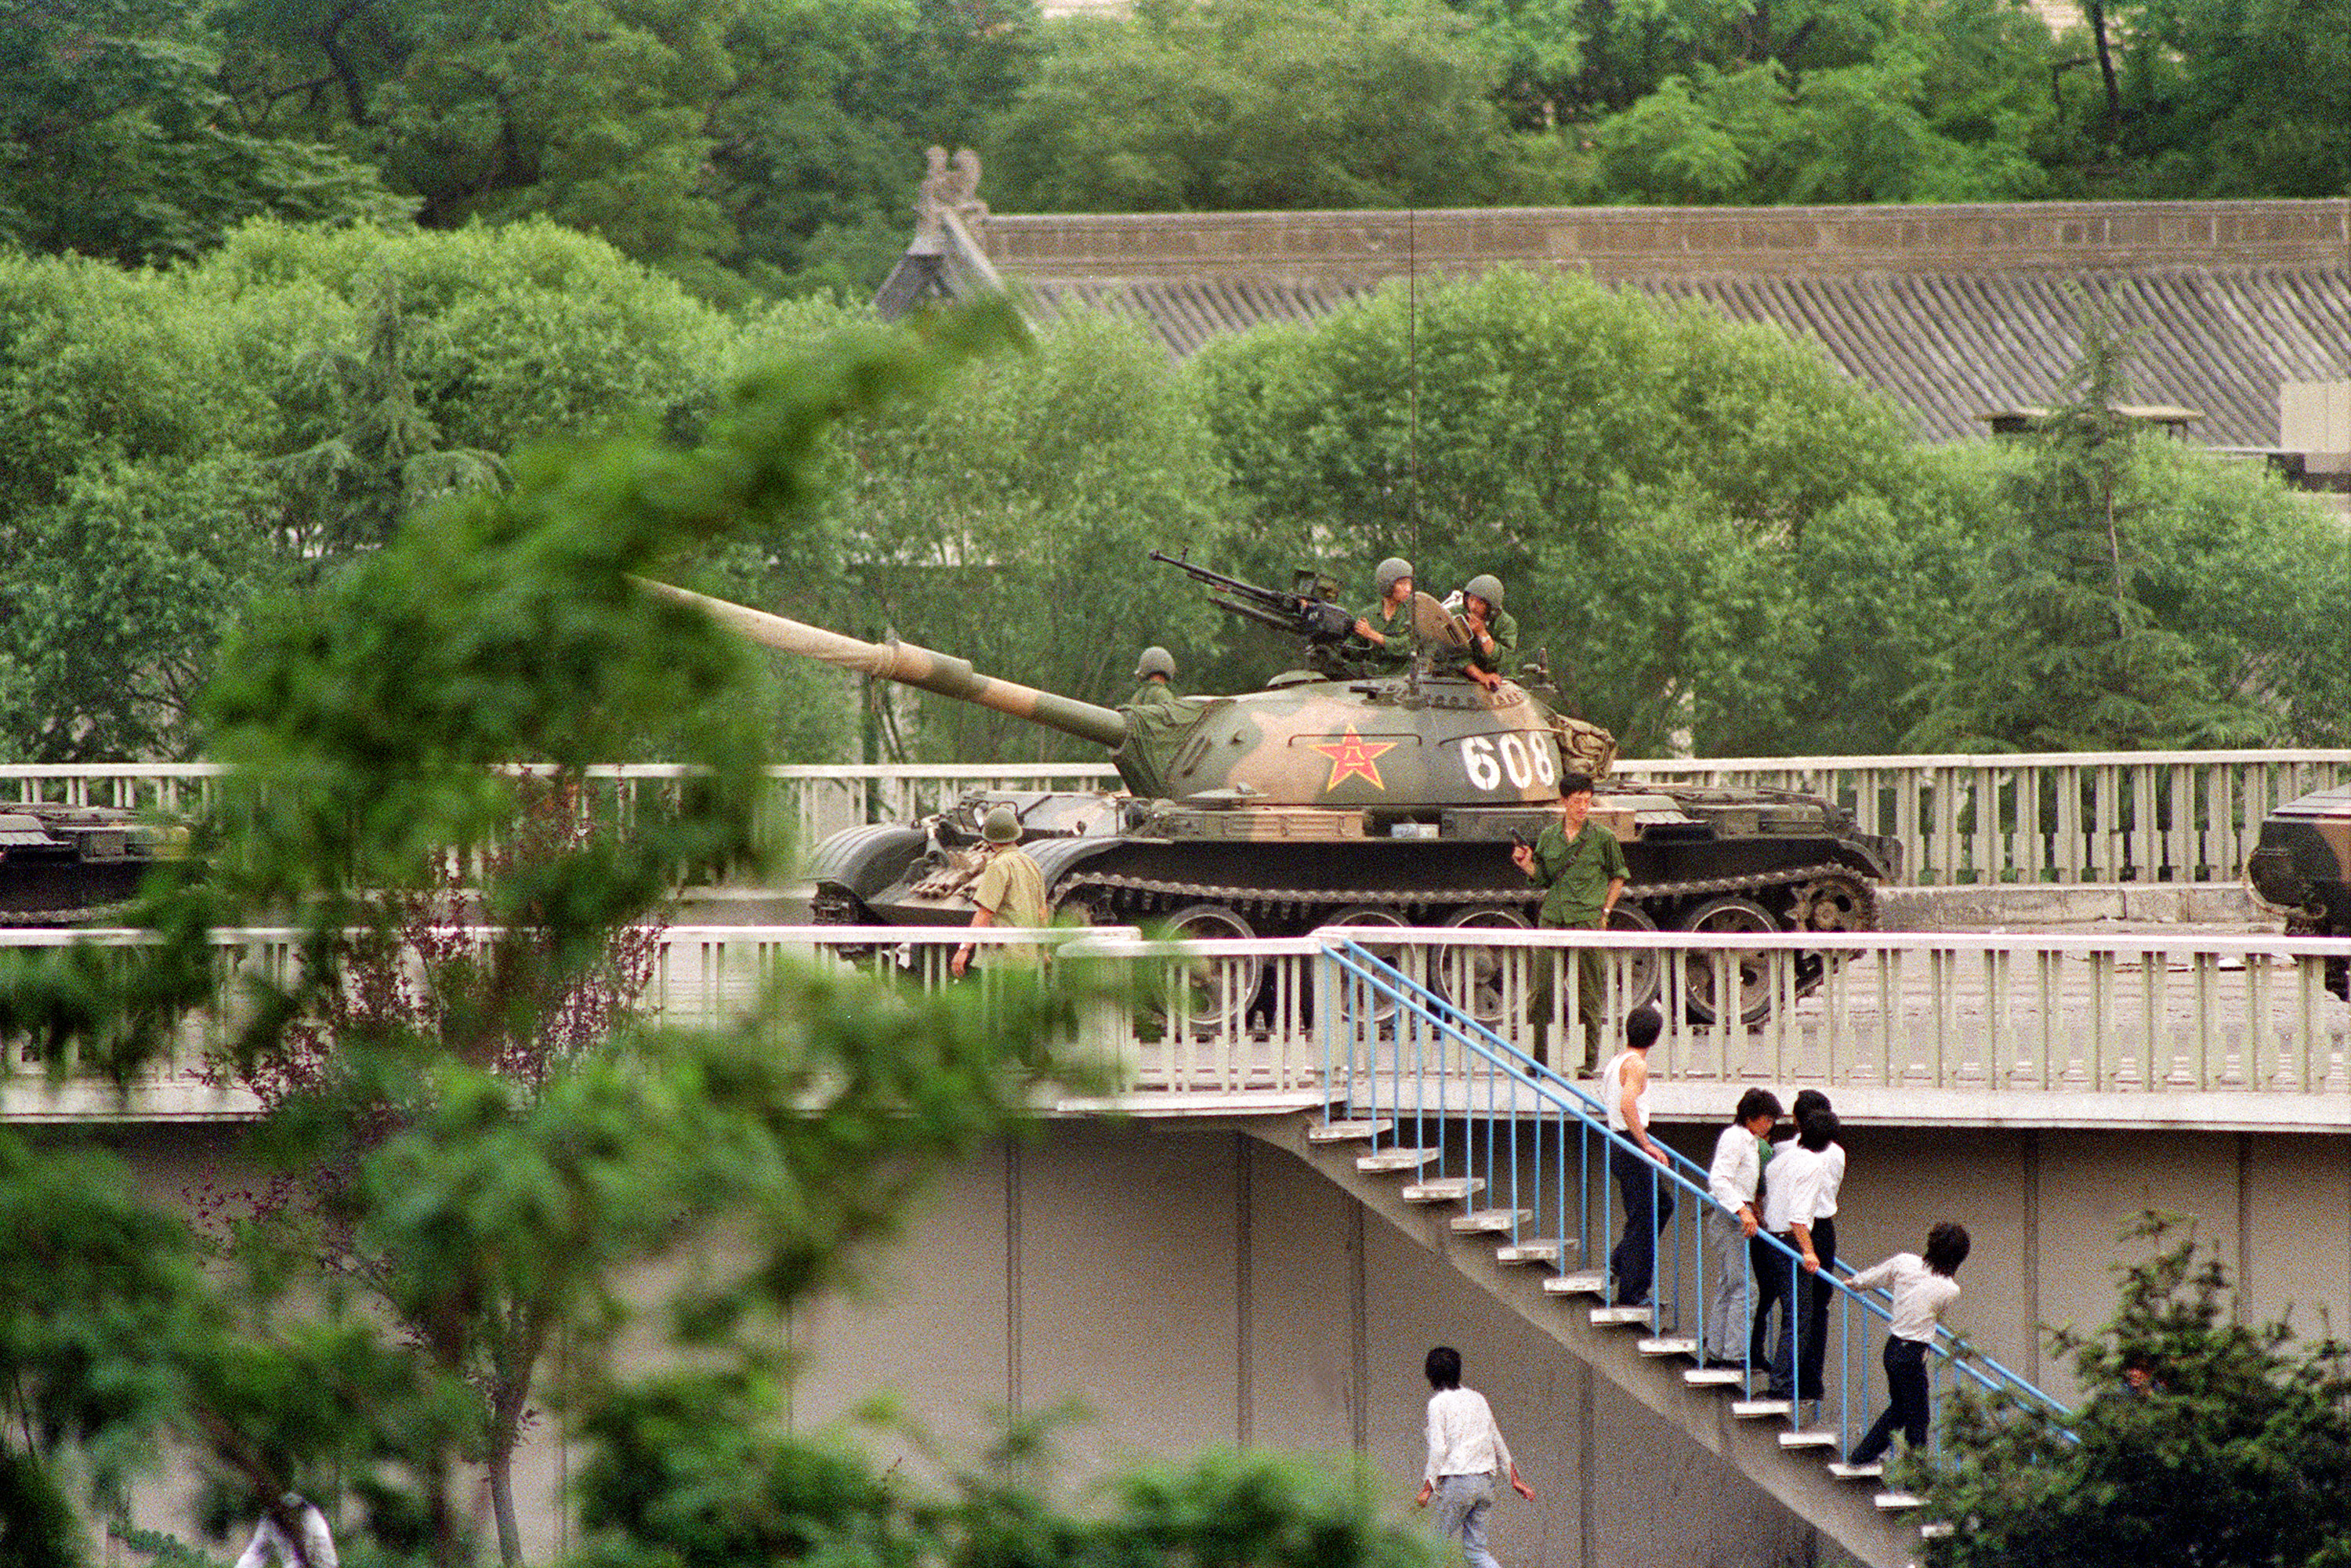 Chinese onlookers run away as a soldier threatens them with a gun on June 5, 1989. (CATHERINE HENRIETTE/AFP/Getty Images)